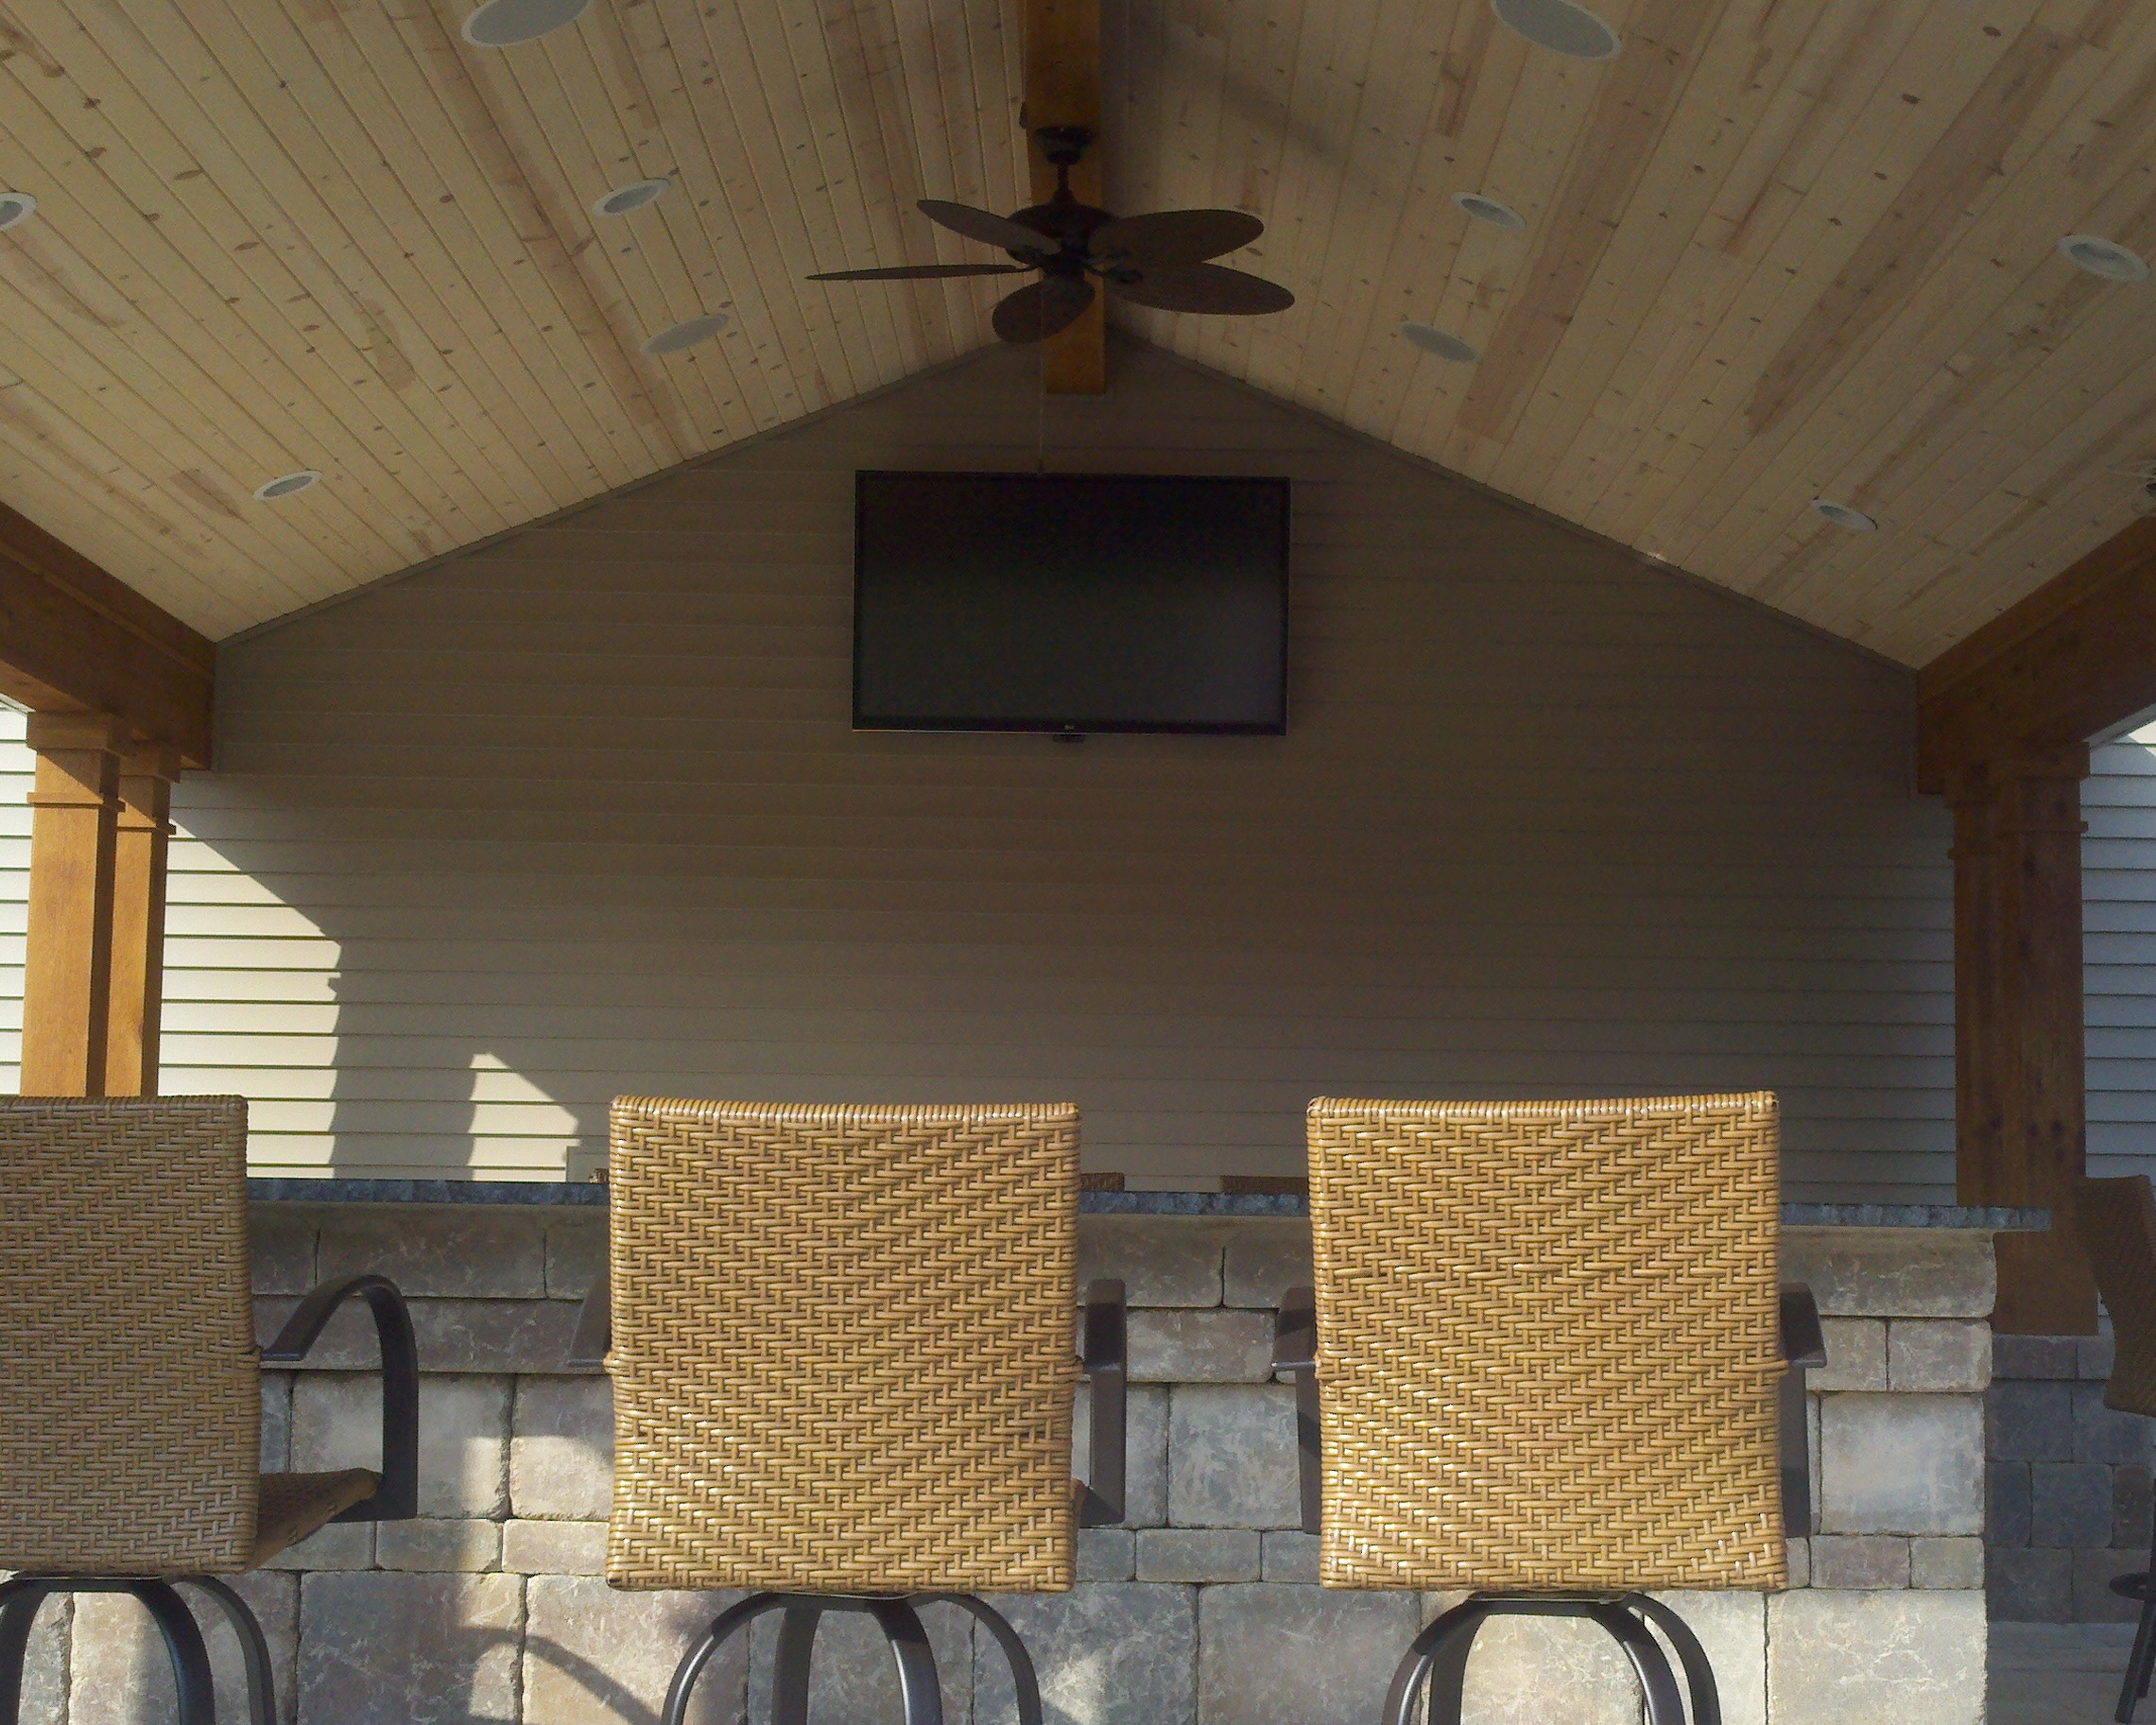 Pavilion TV and Speakers